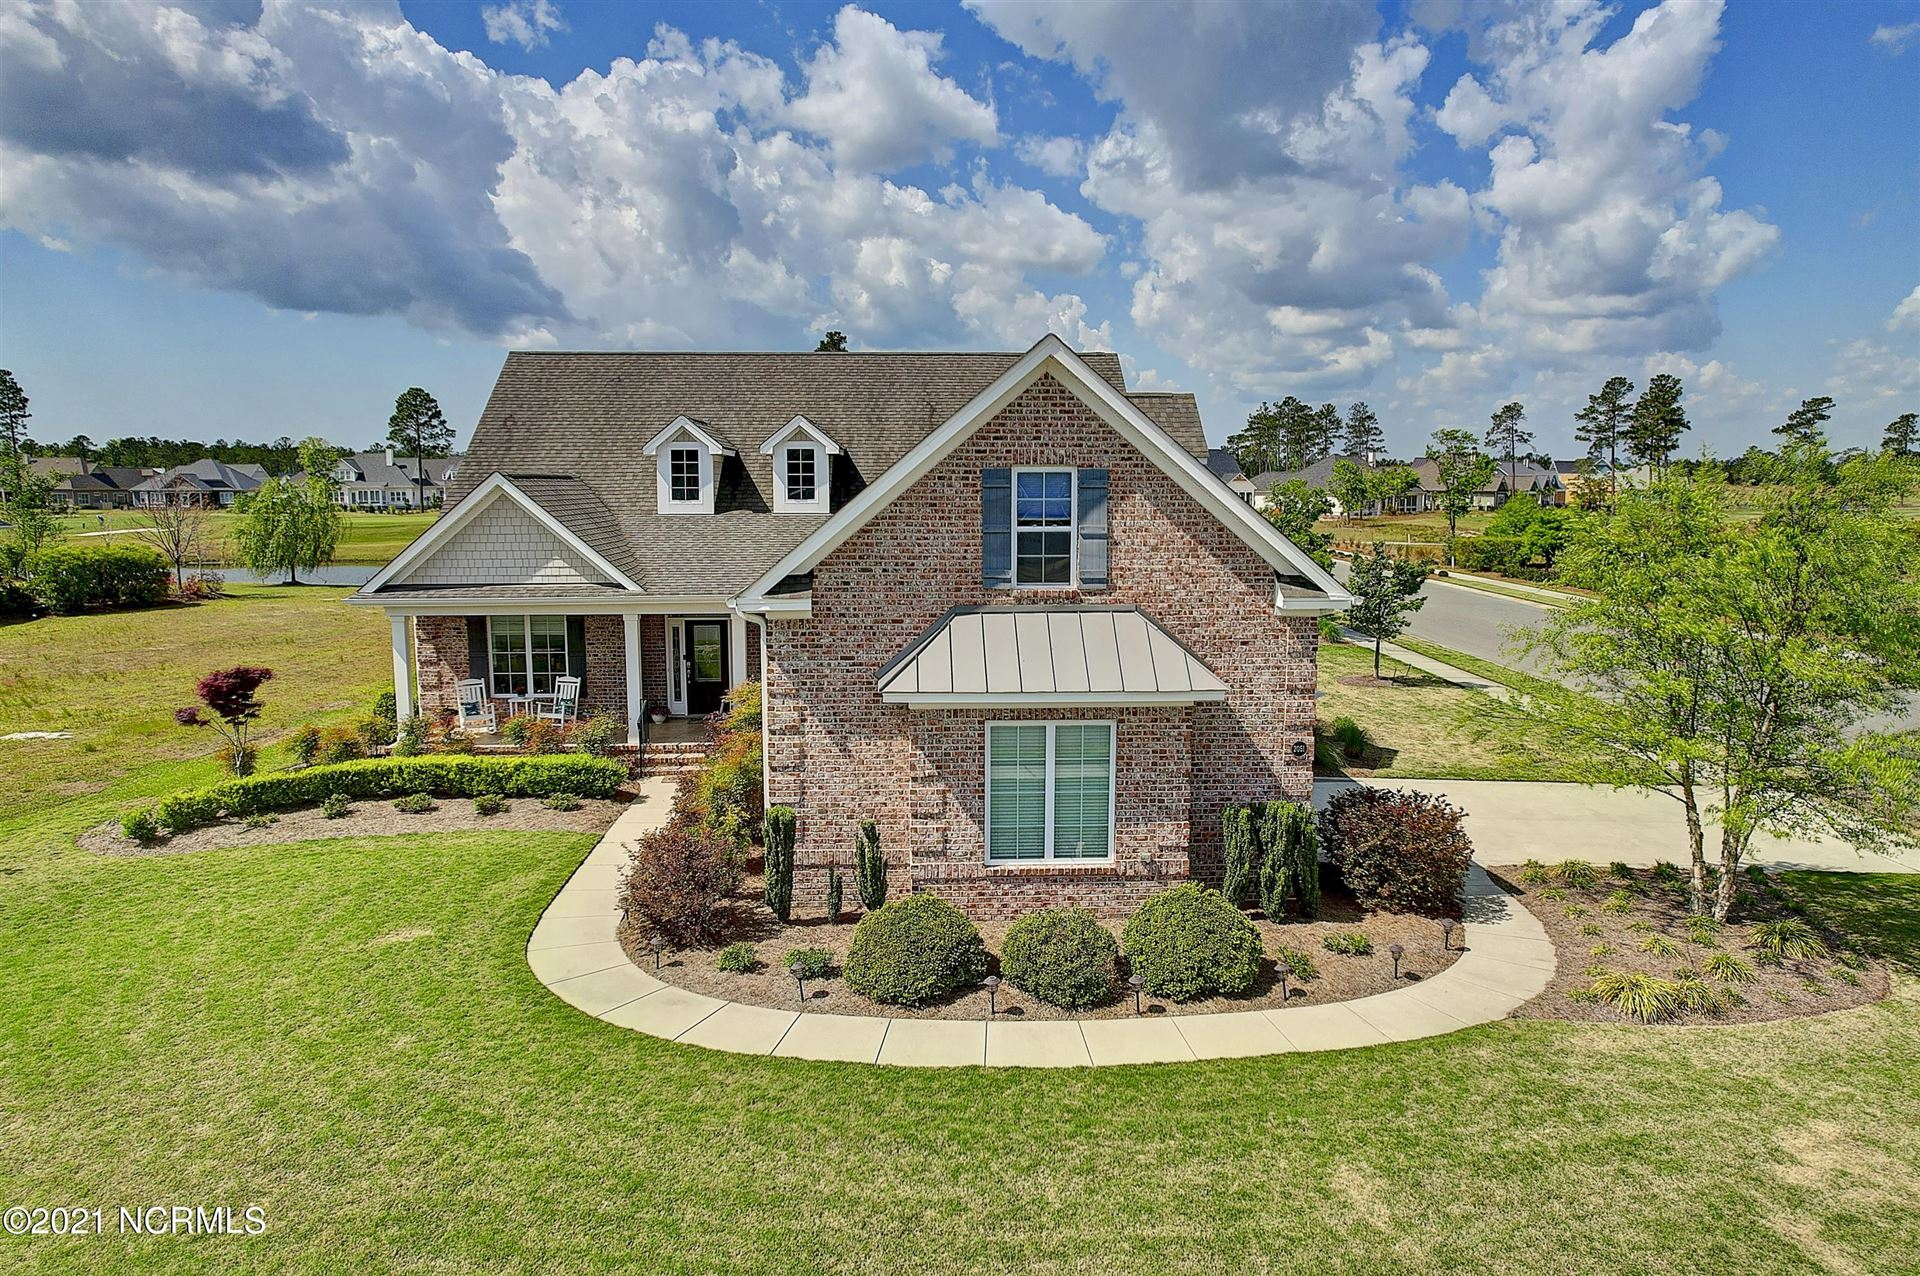 Photo for 2051 Colony Pines Drive, Leland, NC 28451 (MLS # 100268524)